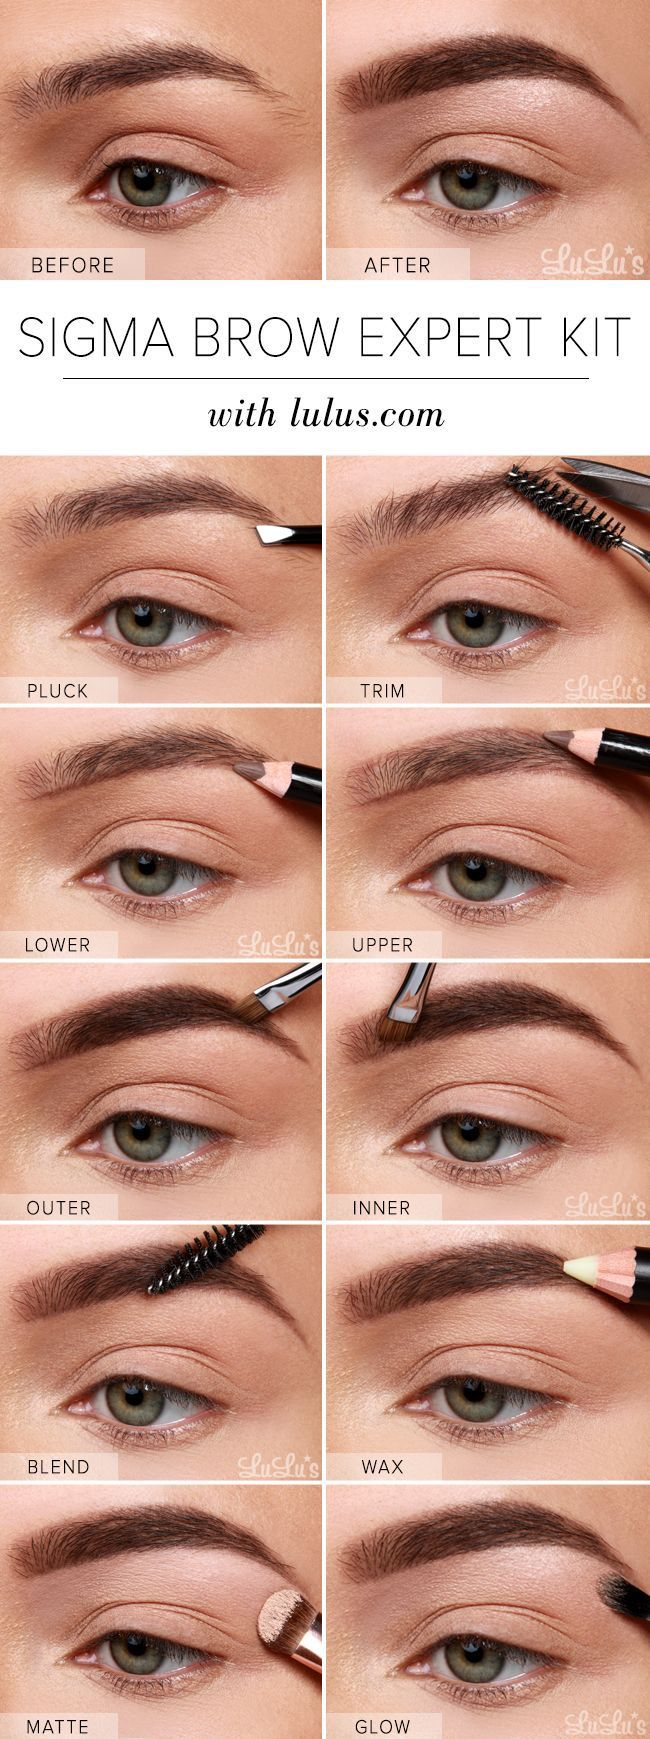 Beauty How-To: Sigma Brow Expert Kit Eyebrow Tutorial